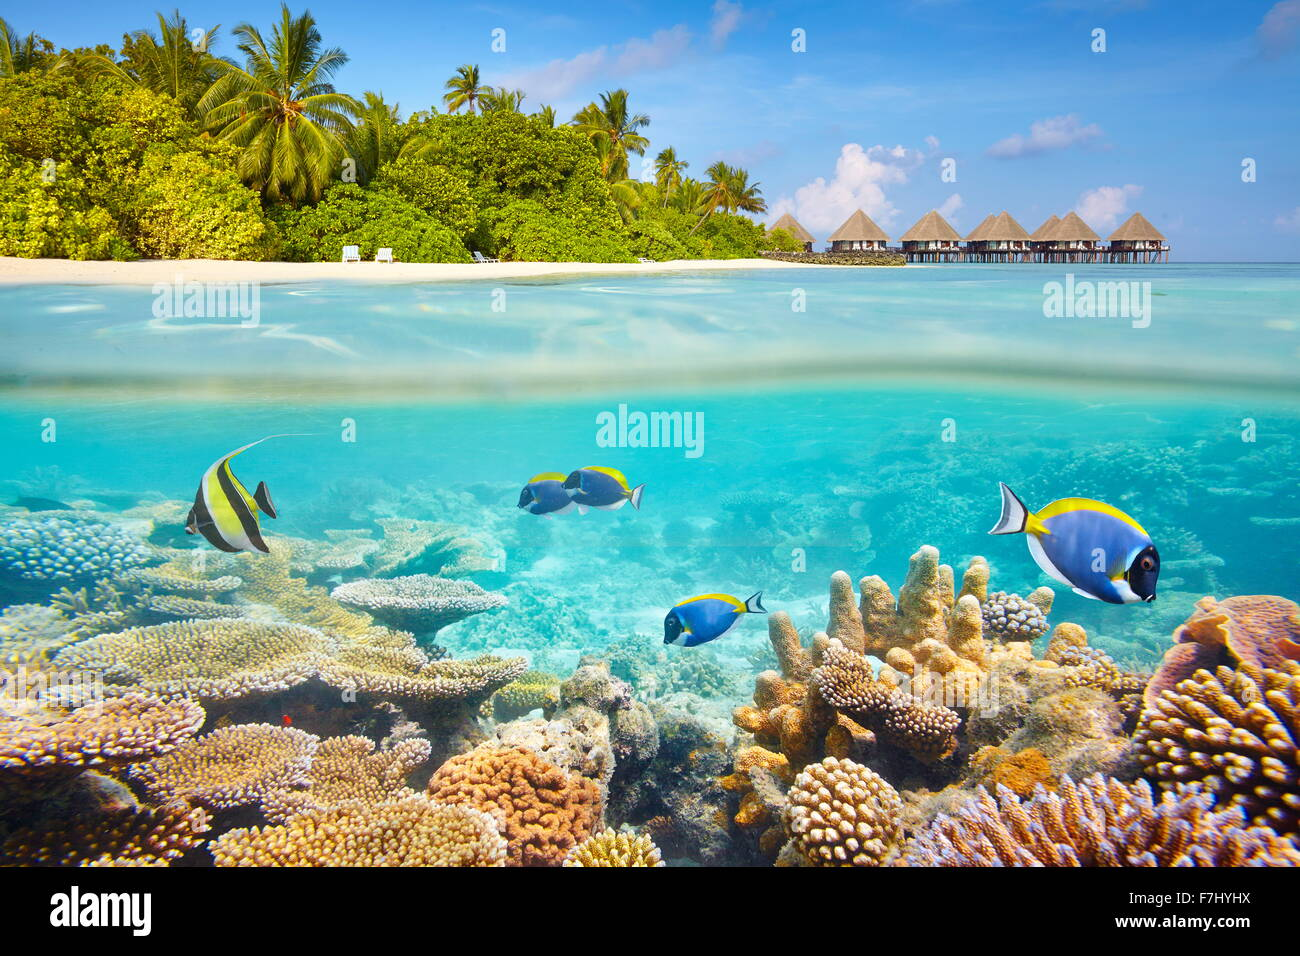 Tropical underwater view with reef and fish, Maldives Island - Stock Image